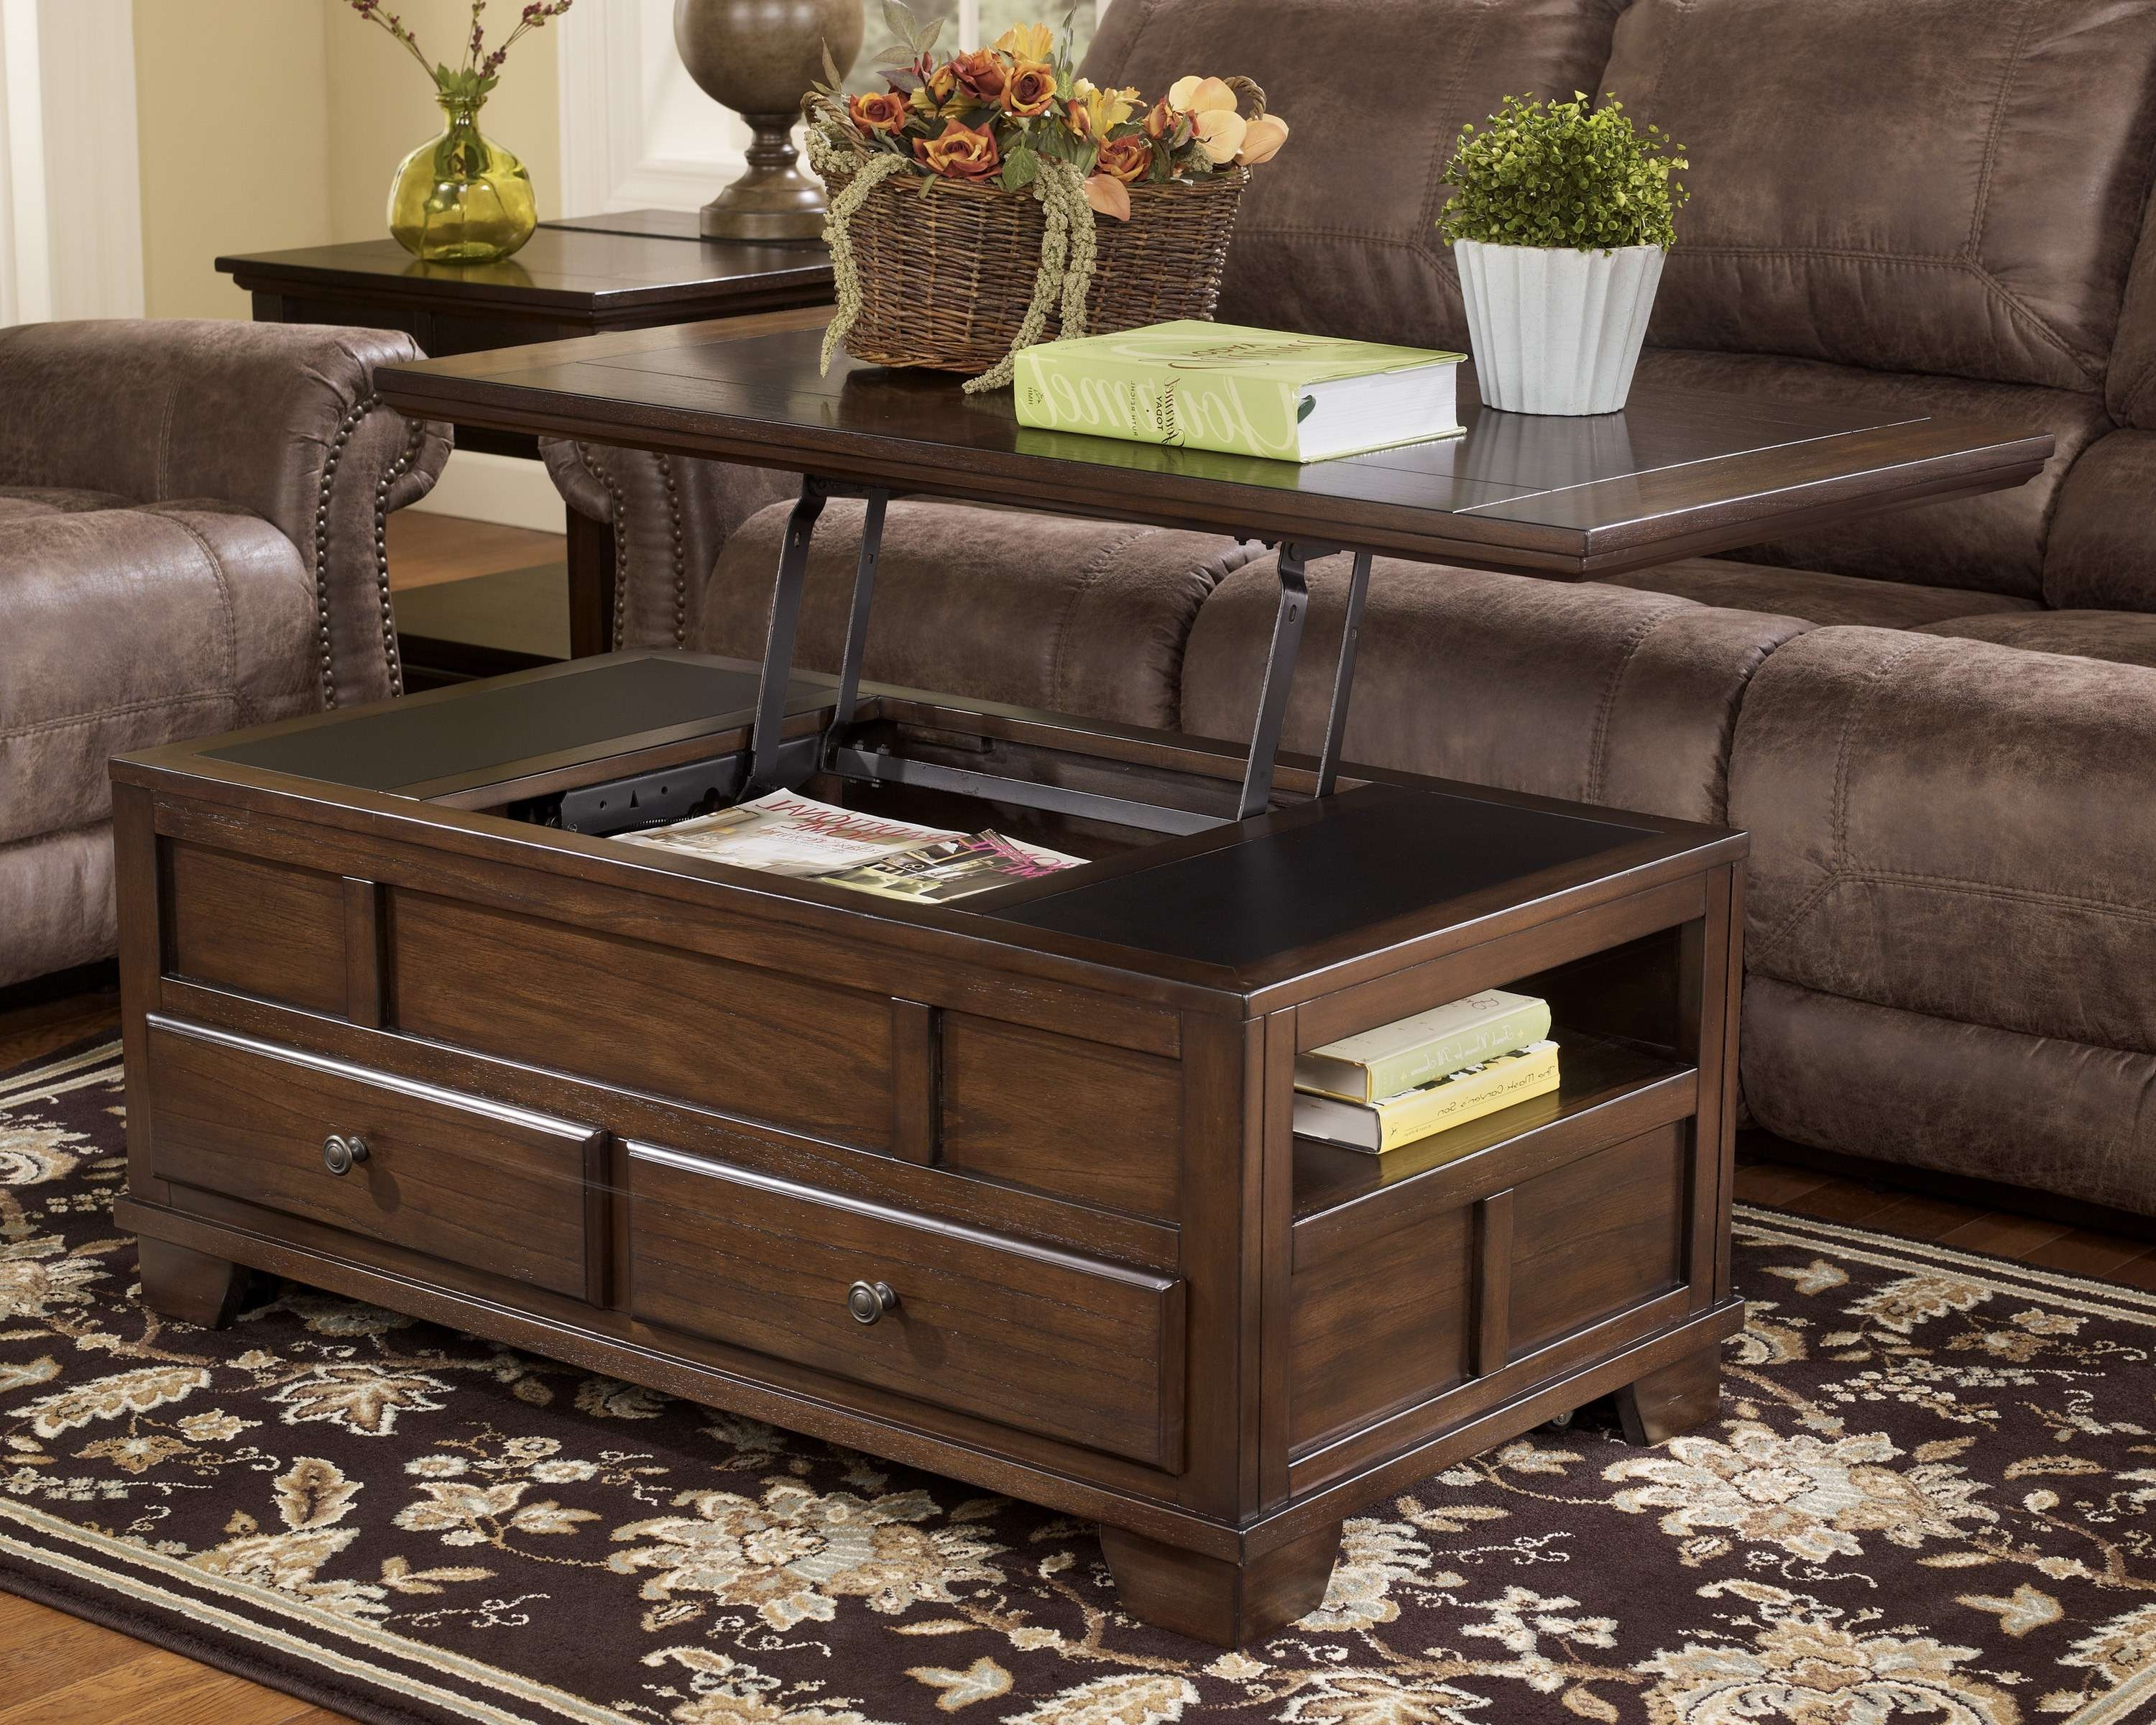 Glass Coffee Tables: Charming Dark Wood Coffee Table With Glass Intended For Well Known Dark Wood Coffee Tables With Glass Top (View 3 of 23)